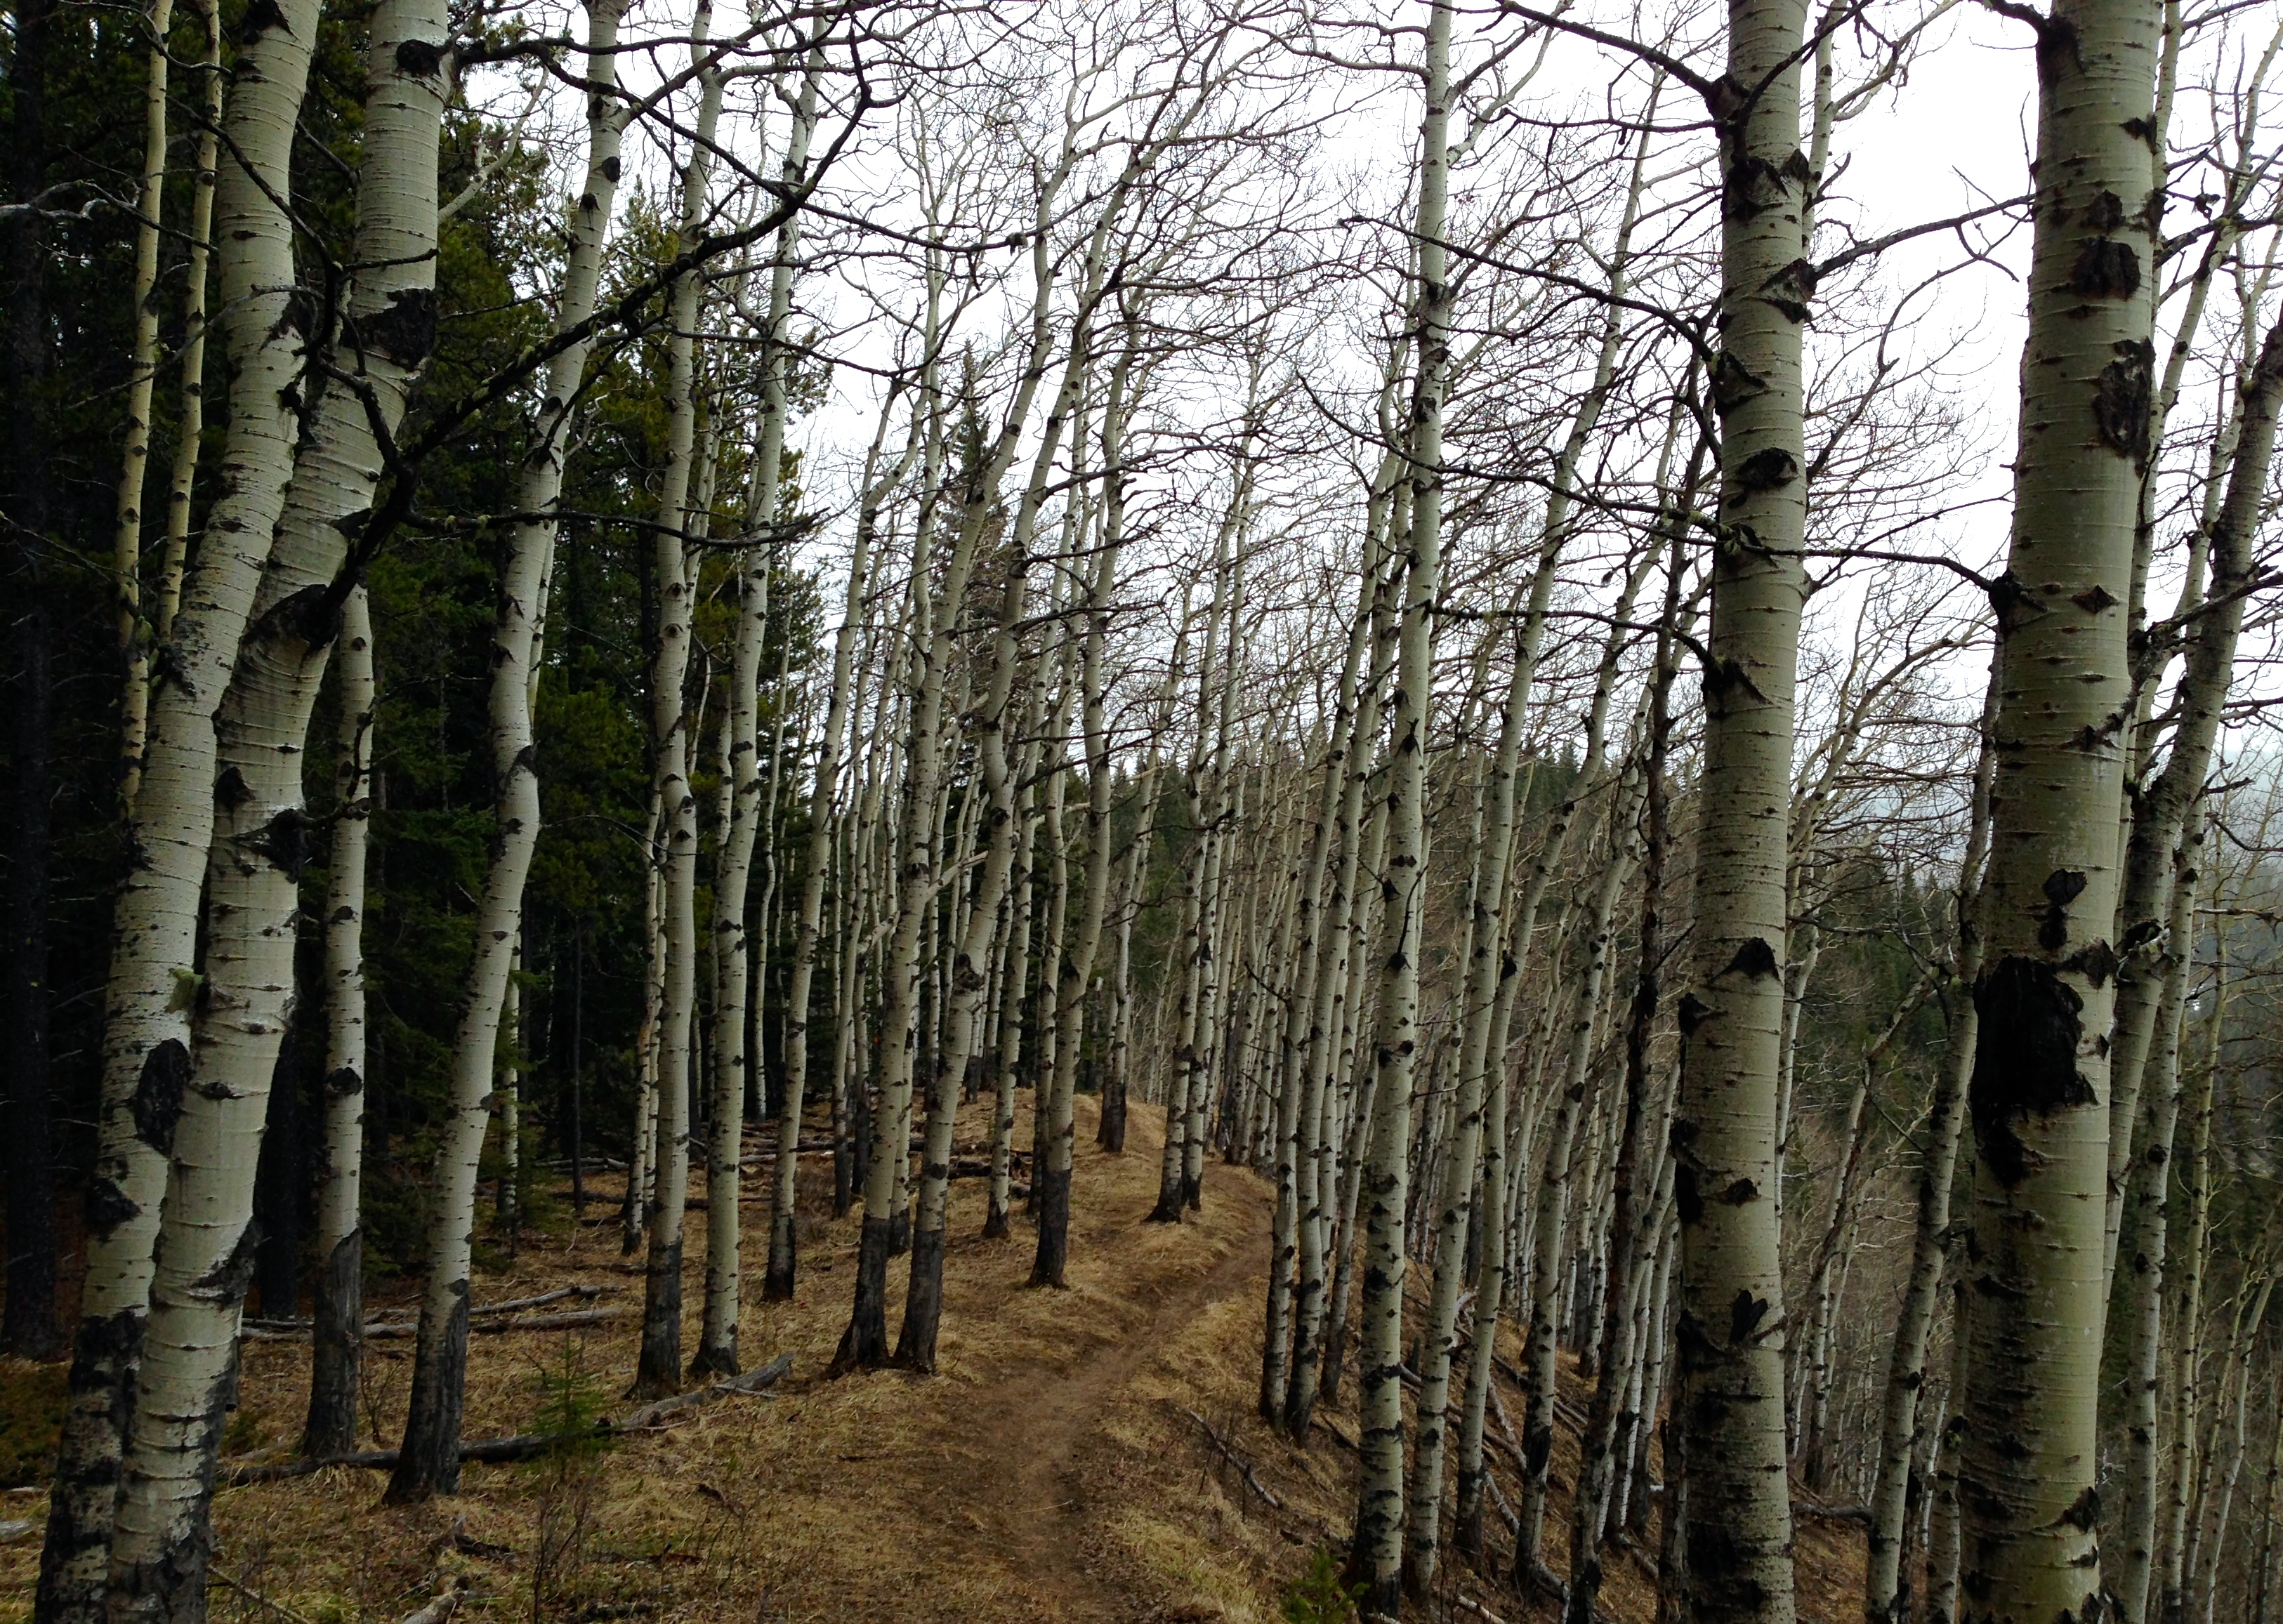 Ominous forest of birch trees